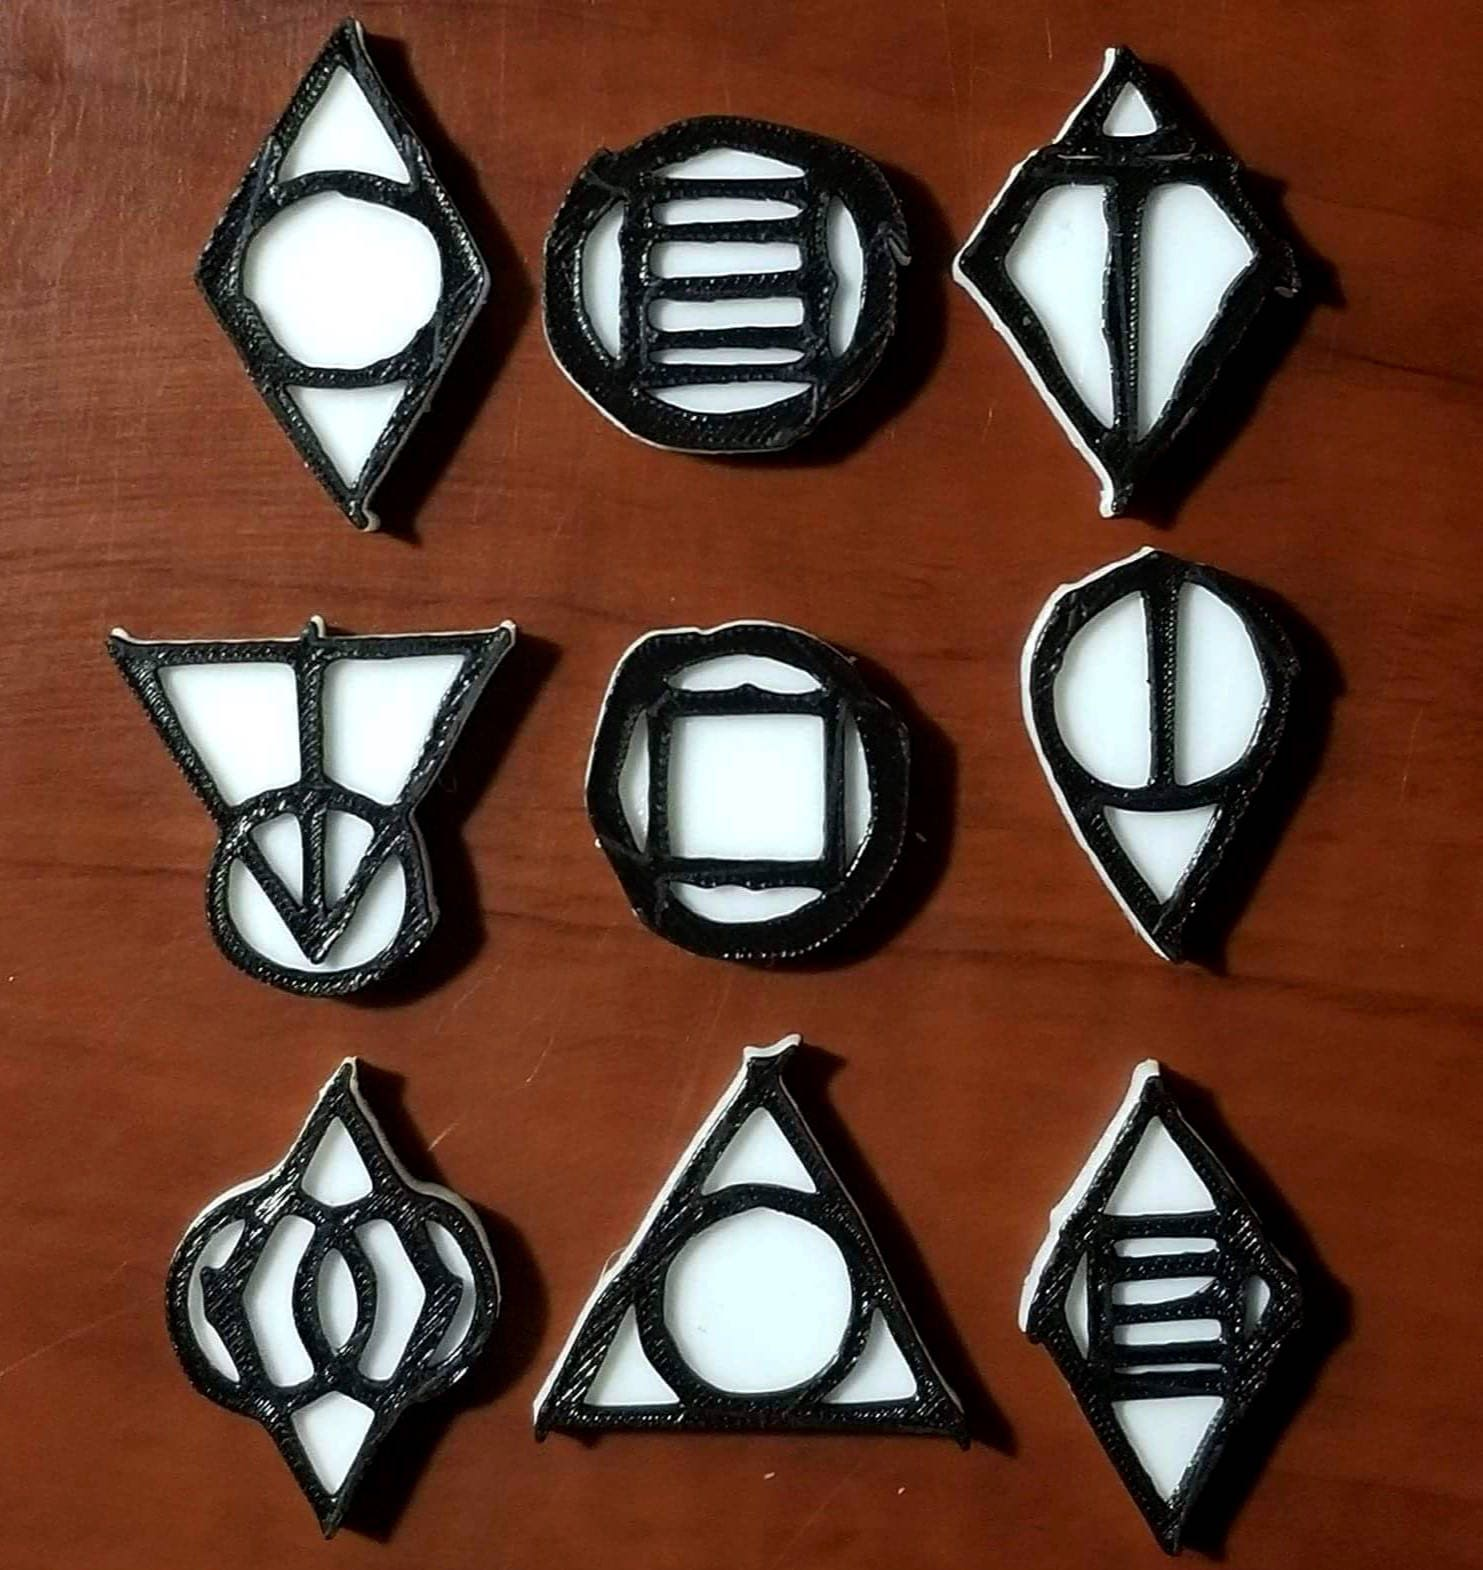 Skyrim Shadowmark Magnets 3D Printed Decoration. Home Decor